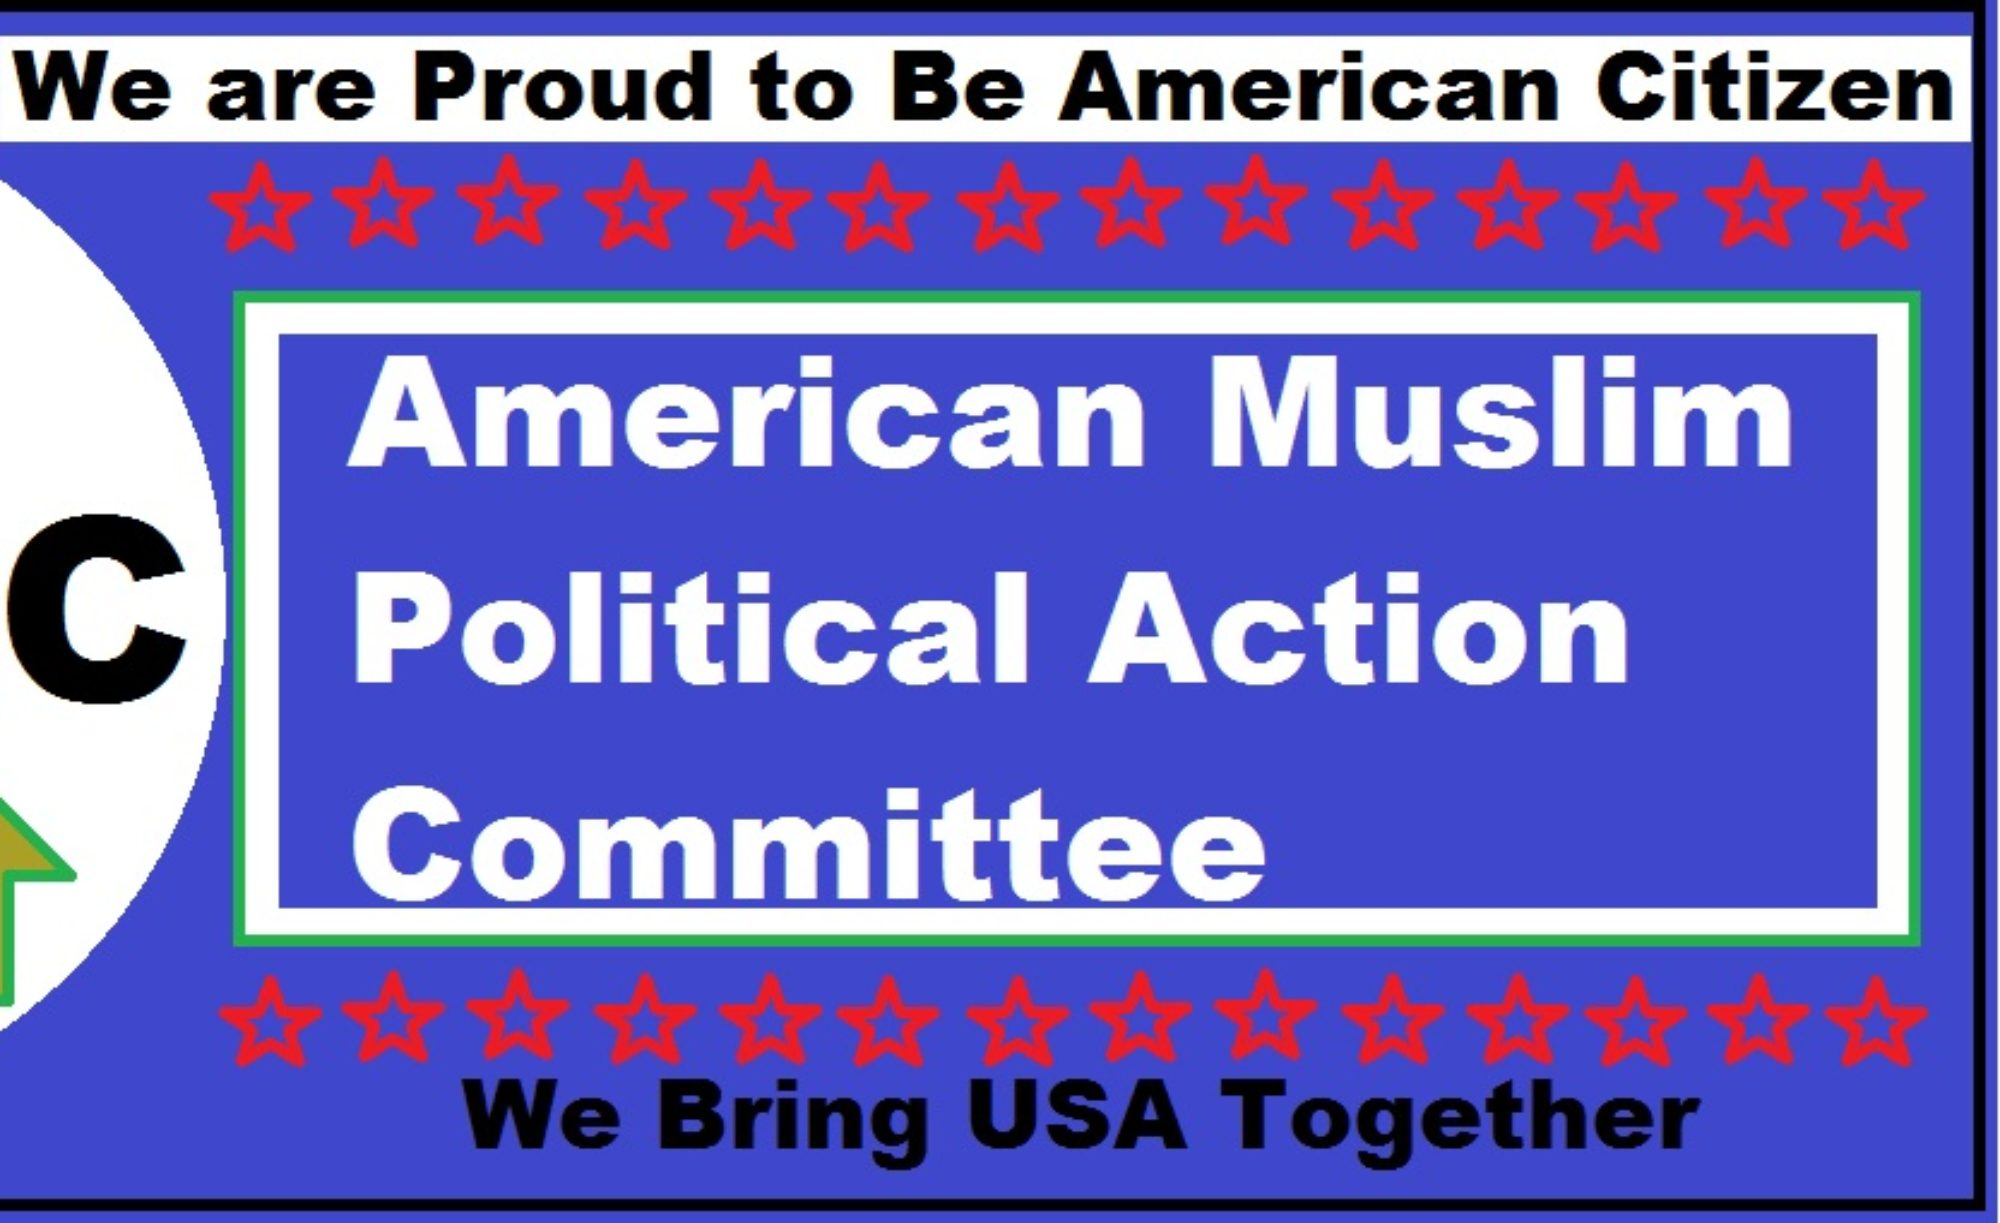 American Muslim Political Action Committee